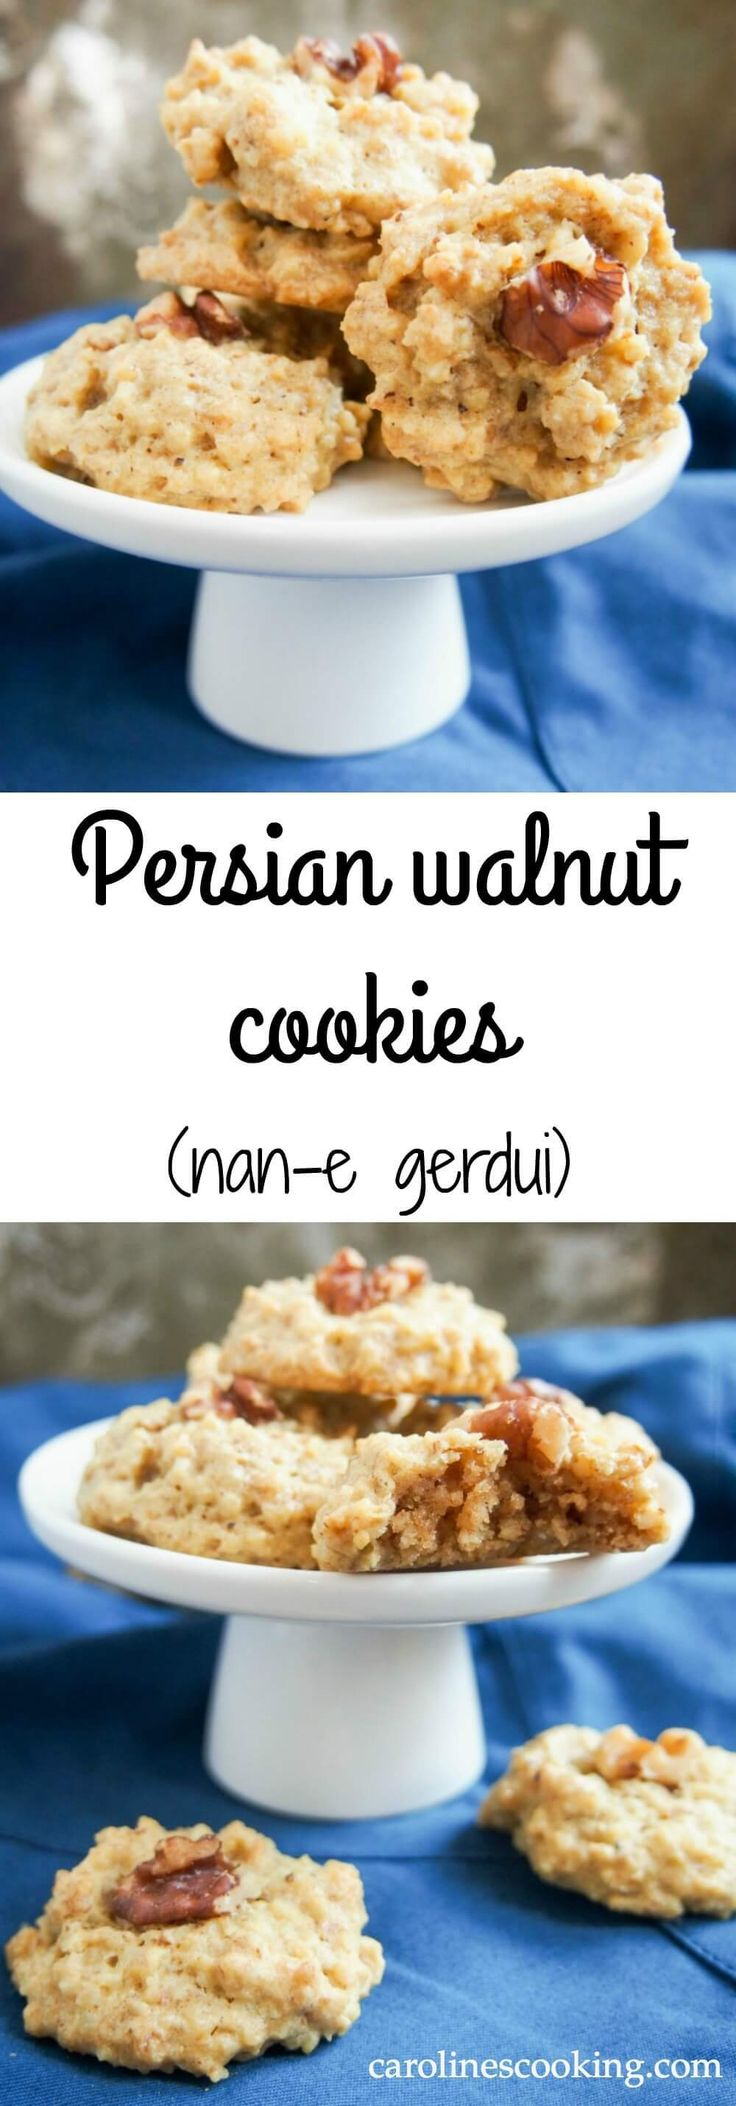 Persian walnut cookies - nan-e gerdui: These Persian walnut cookies have only 4 ingredients, are gluten free & easy to make. Traditionally for Nowruz, they're a tasty treat any time.